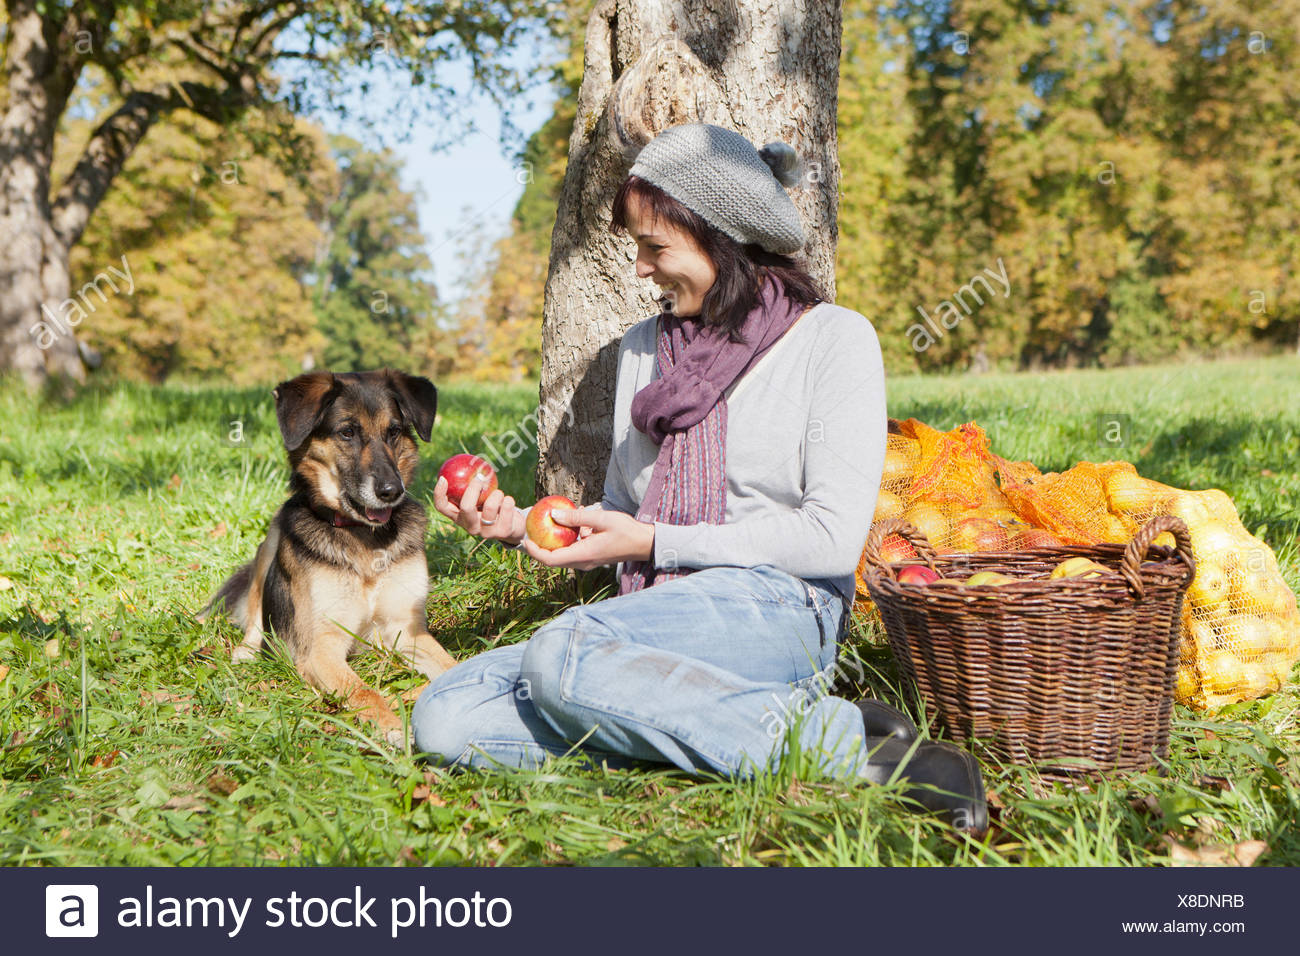 Woman picking apples with dog - Stock Image